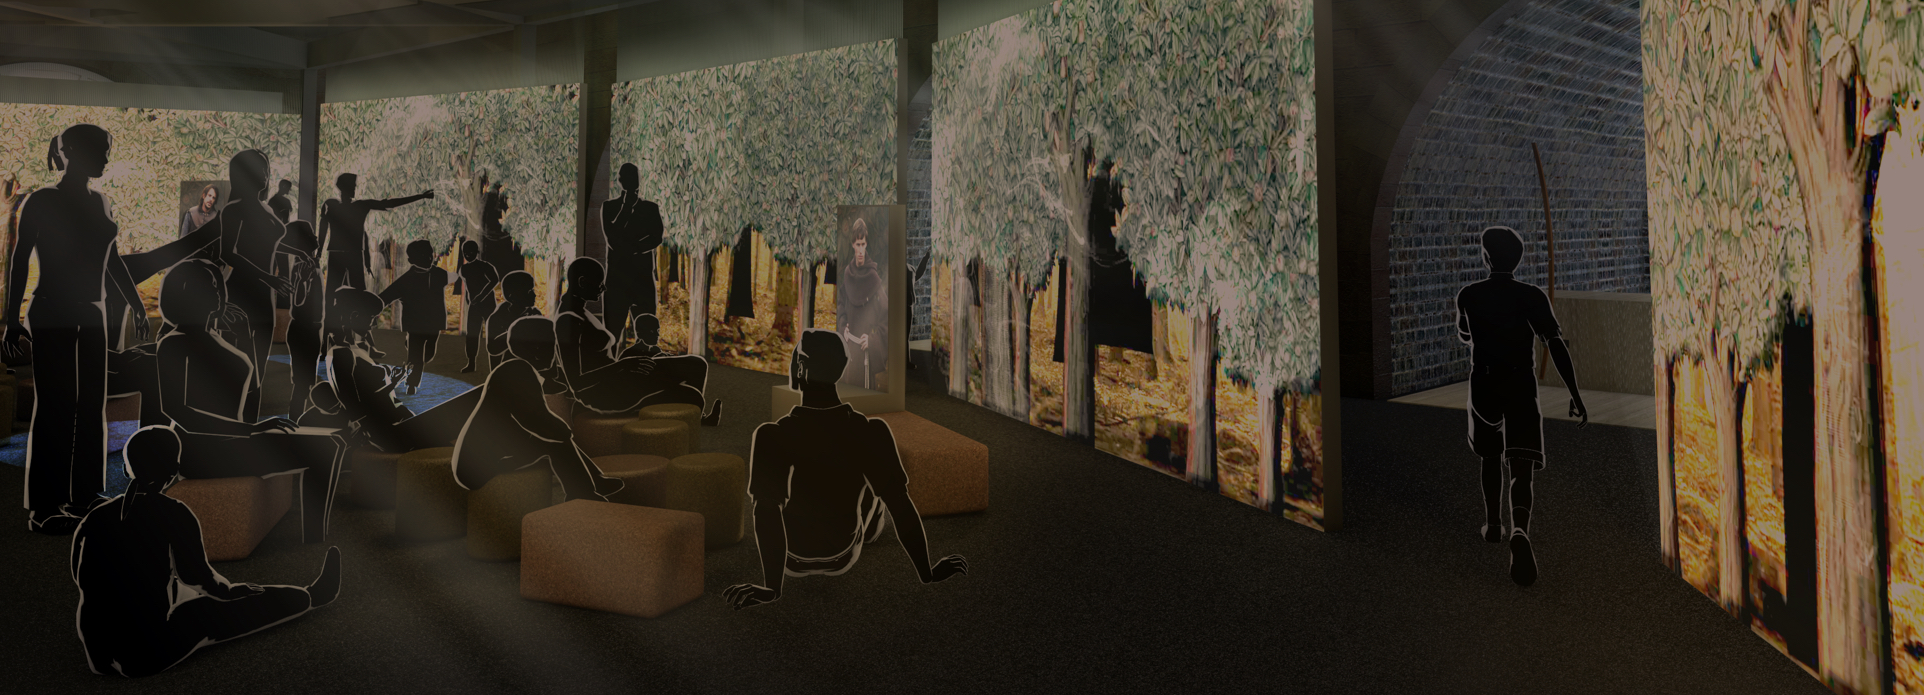 Artist's impressions of the Robin Hood Gallery. Images courtesy of Casson Mann. © Nottingham Castle